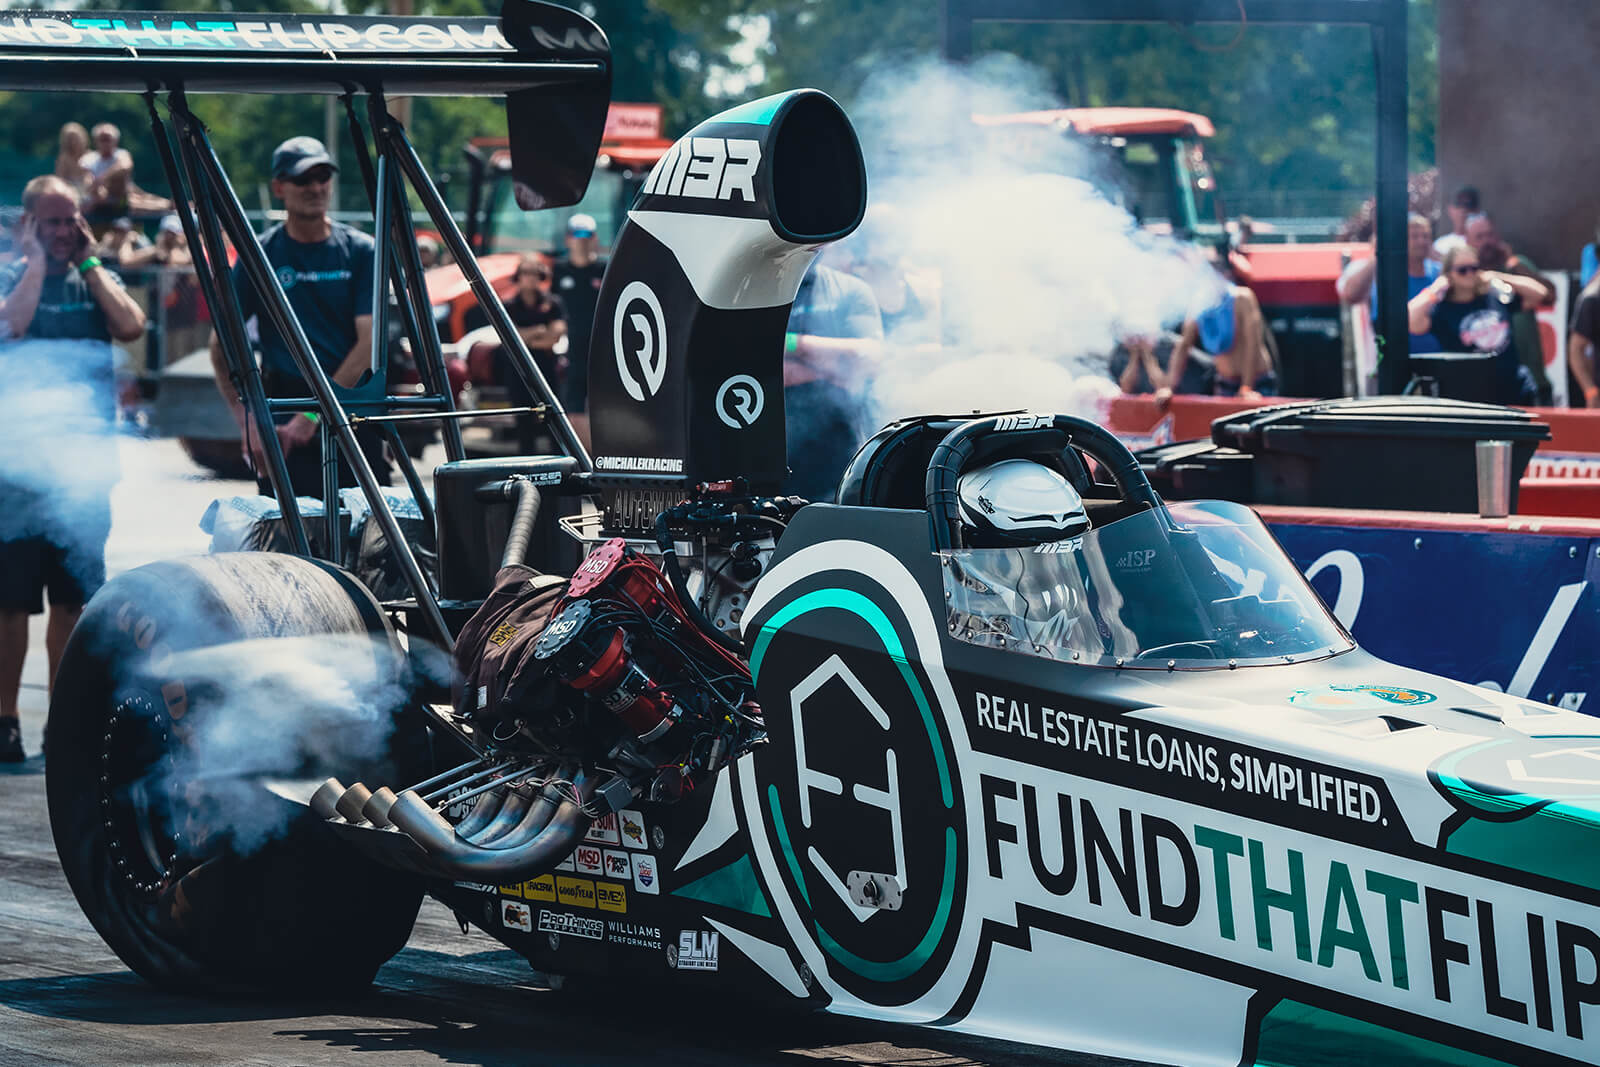 Night Under Fire Results Have MBR Feeling Motivated for U.S. Nationals